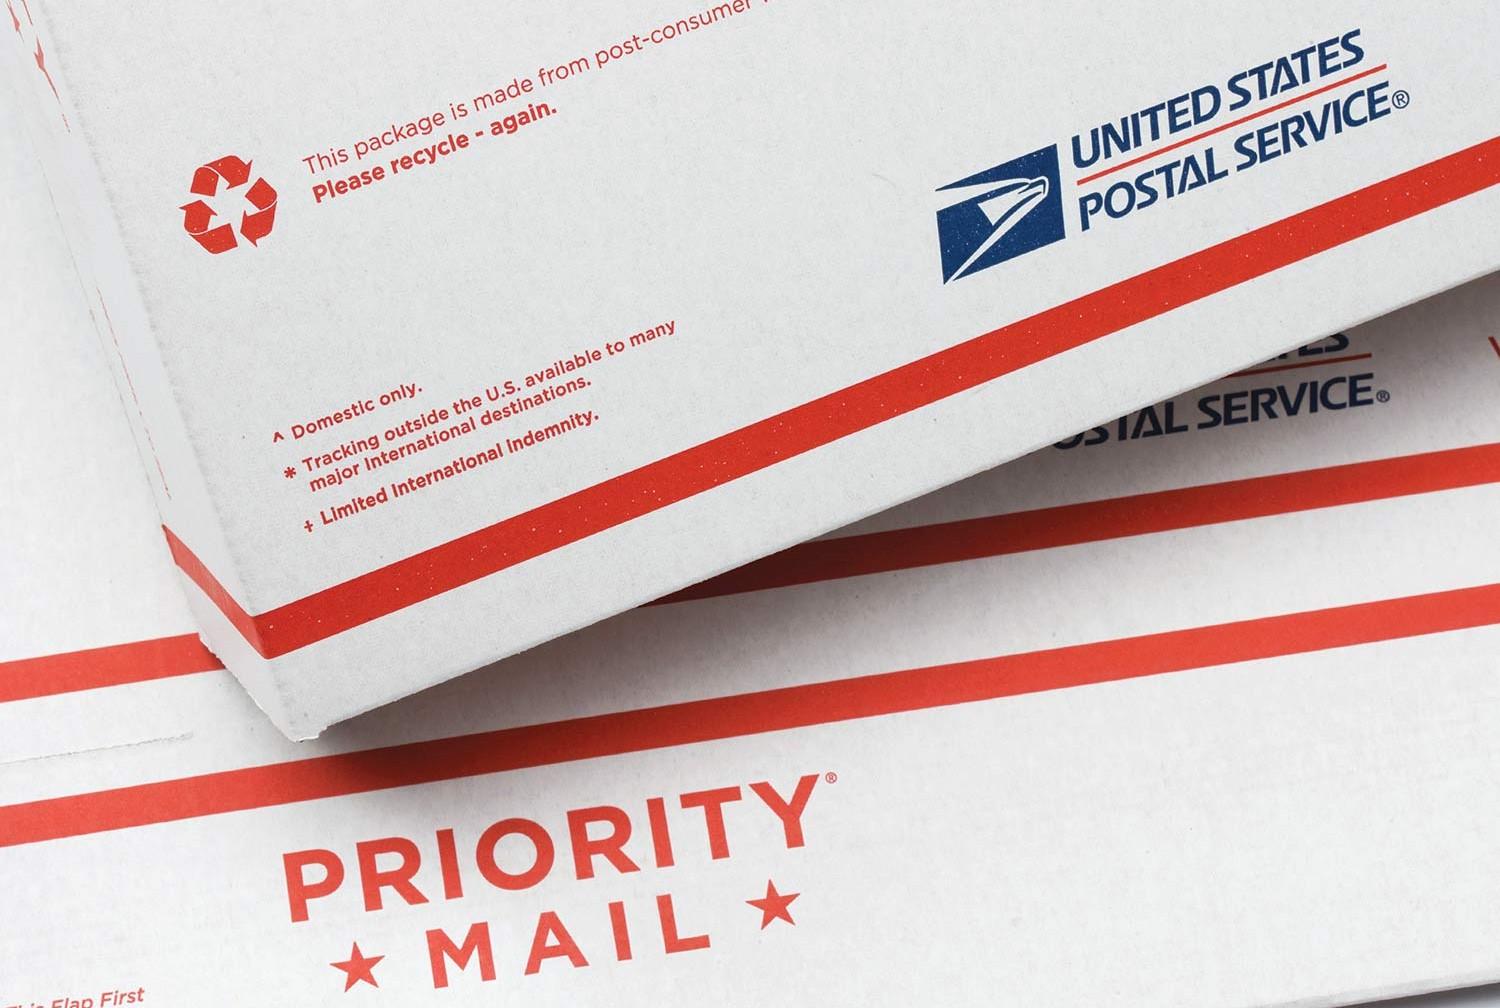 Gorgeous Project Details Usps Your Business Moments Consumer Priority Service Ebay Consumer Priority Service Review dpreview Consumer Priority Service